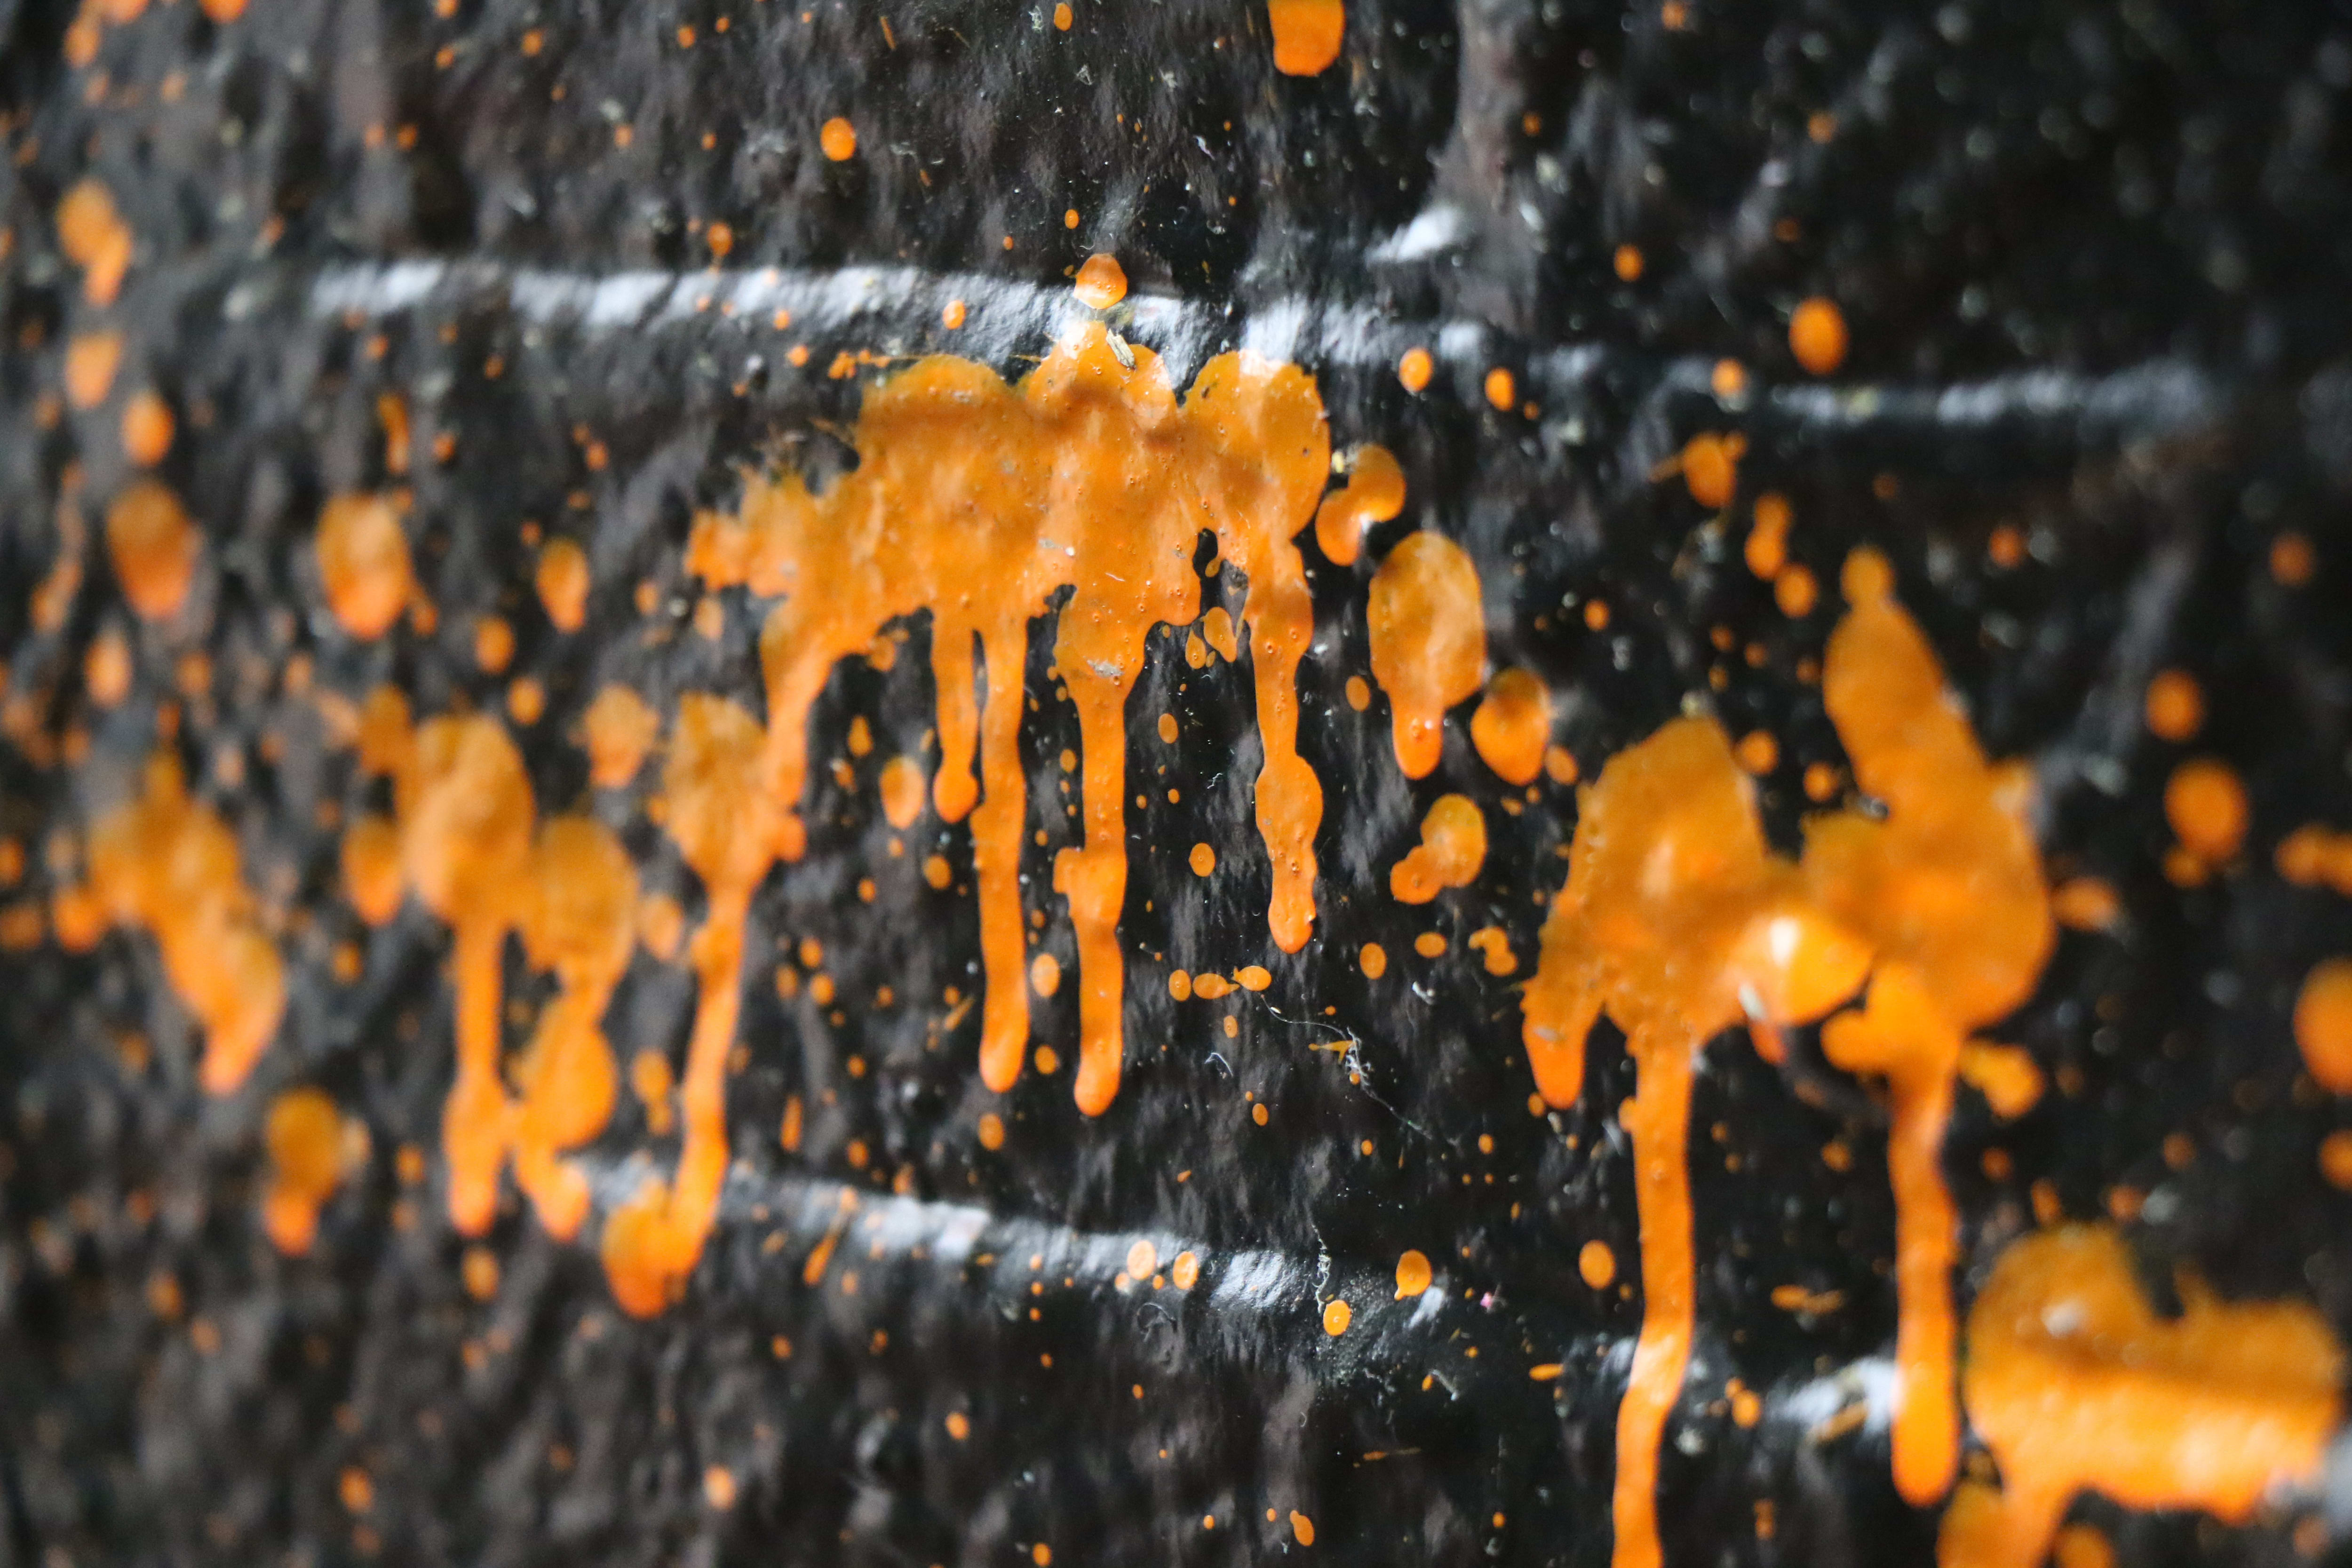 A sample photo of splattered paint taken by the Canon EOS 7D Mark II.